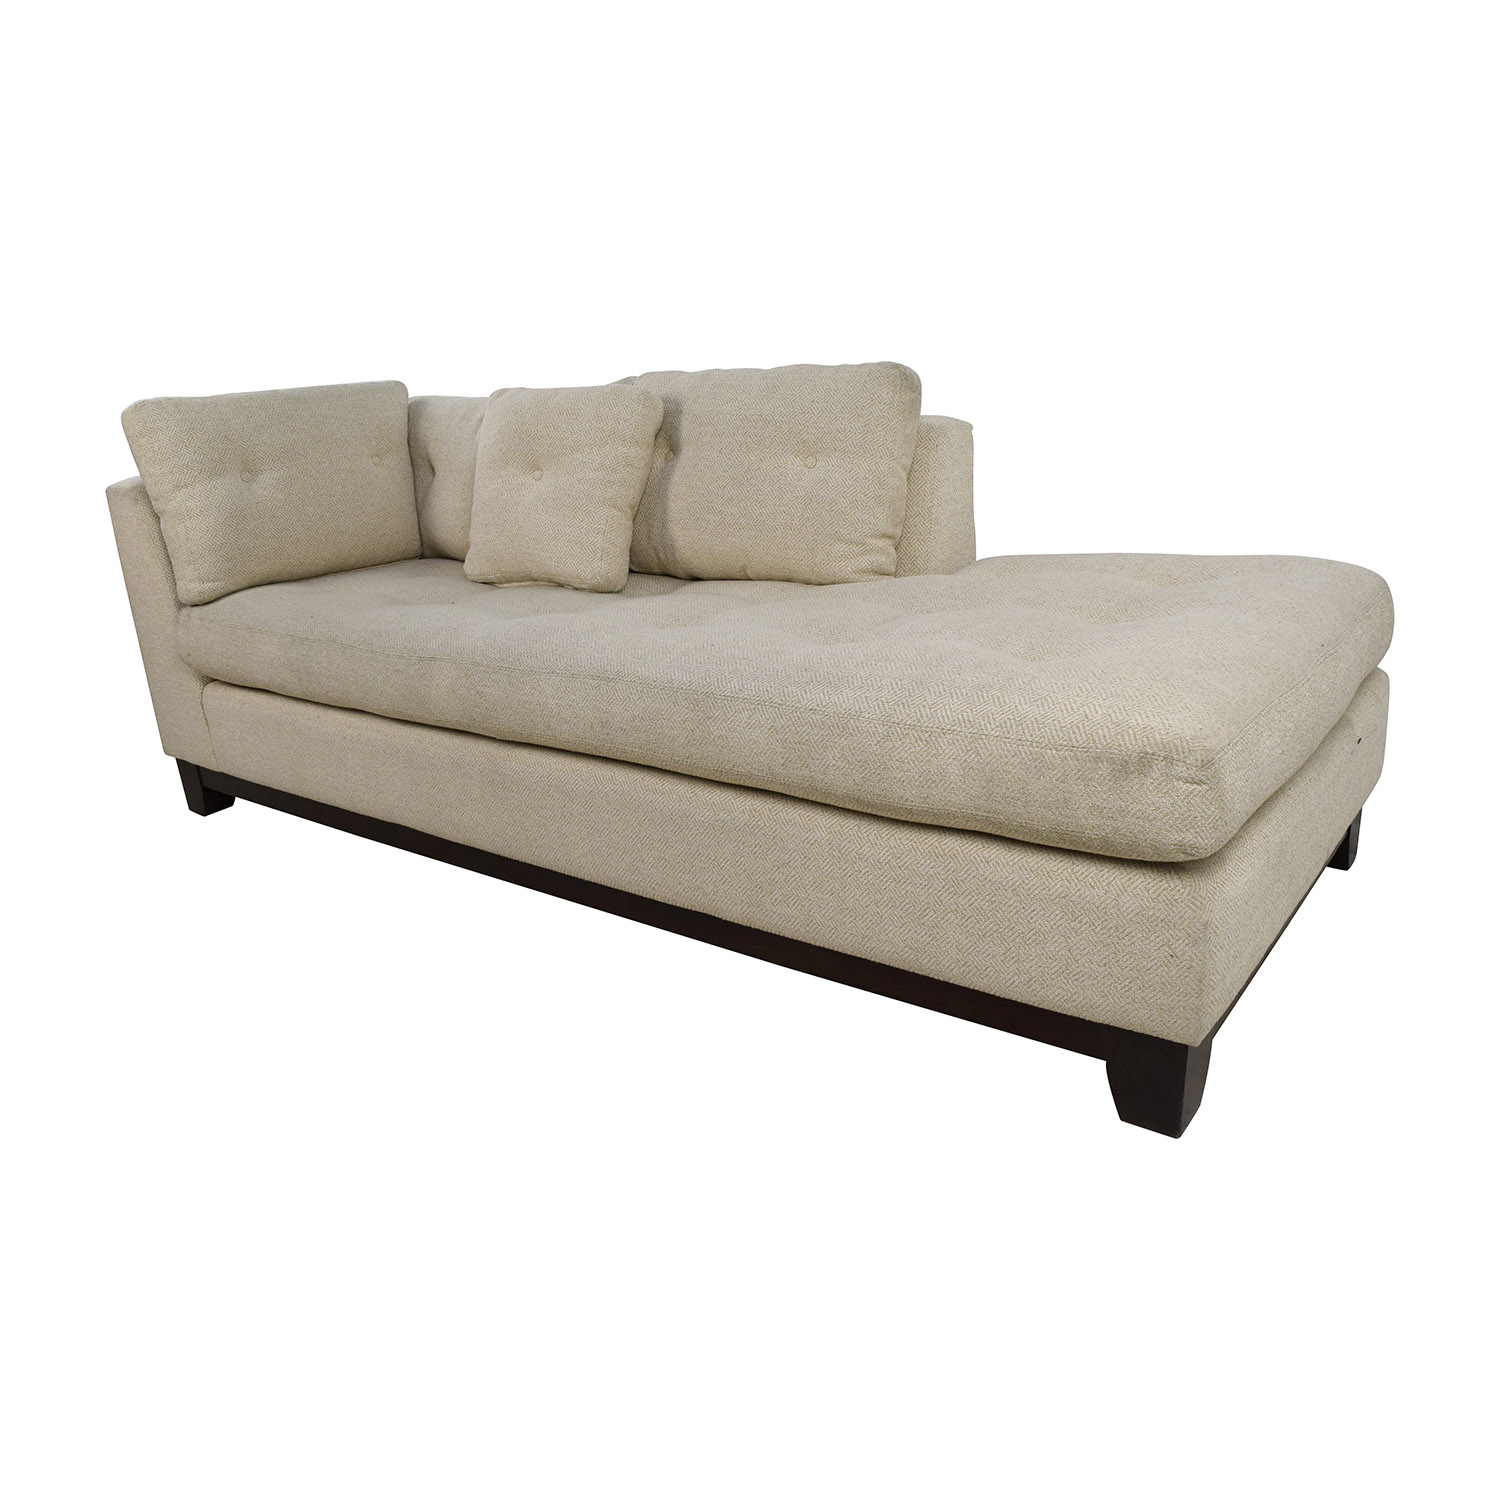 Fabric Sectional Sofas With Chaise 79% Off - Freestyle Tufted Natural Fabric Sofa Chaise / Sofas